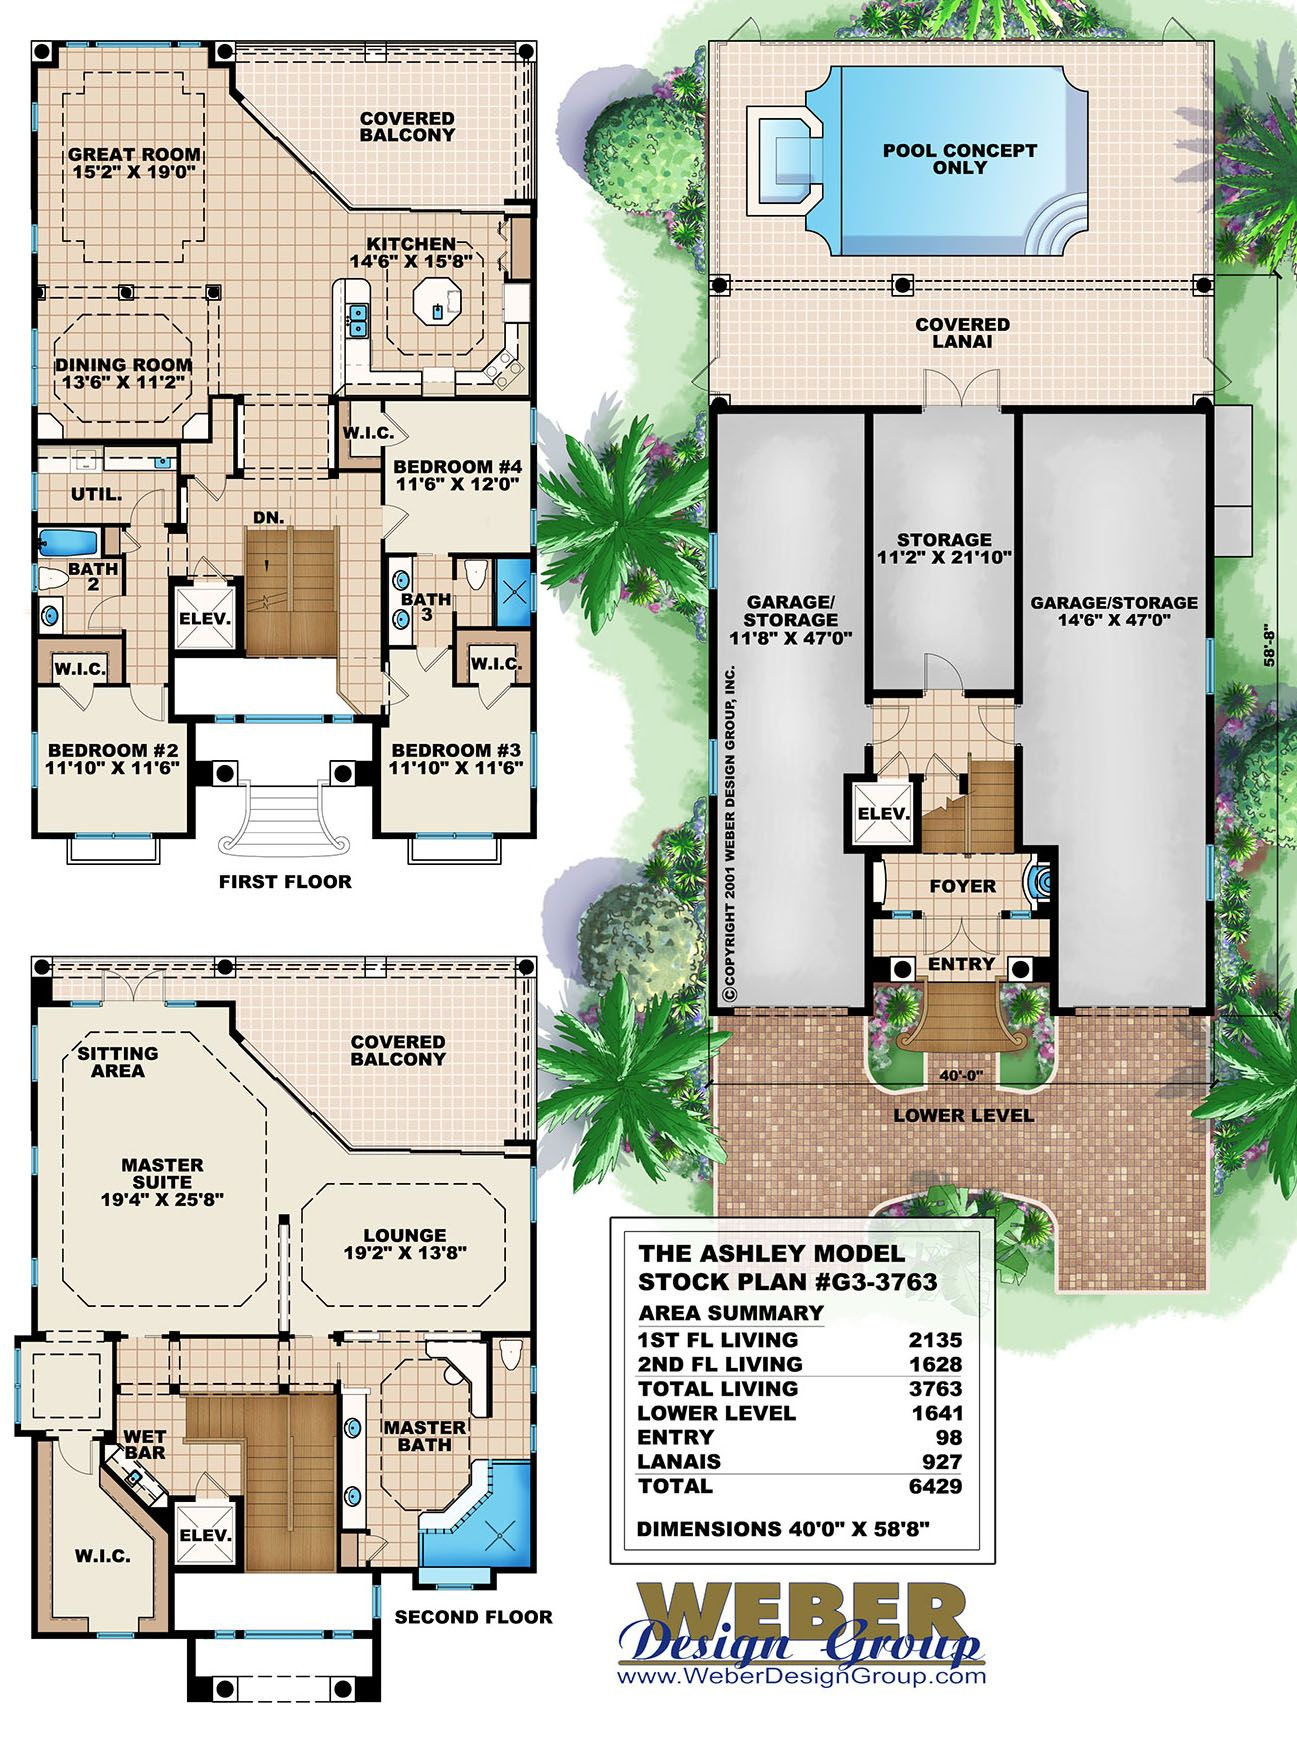 Tuscan House Plans Mediterranean Tuscan Style Home Floor Plans Coastal House Plans Beach House Plans Mediterranean Homes